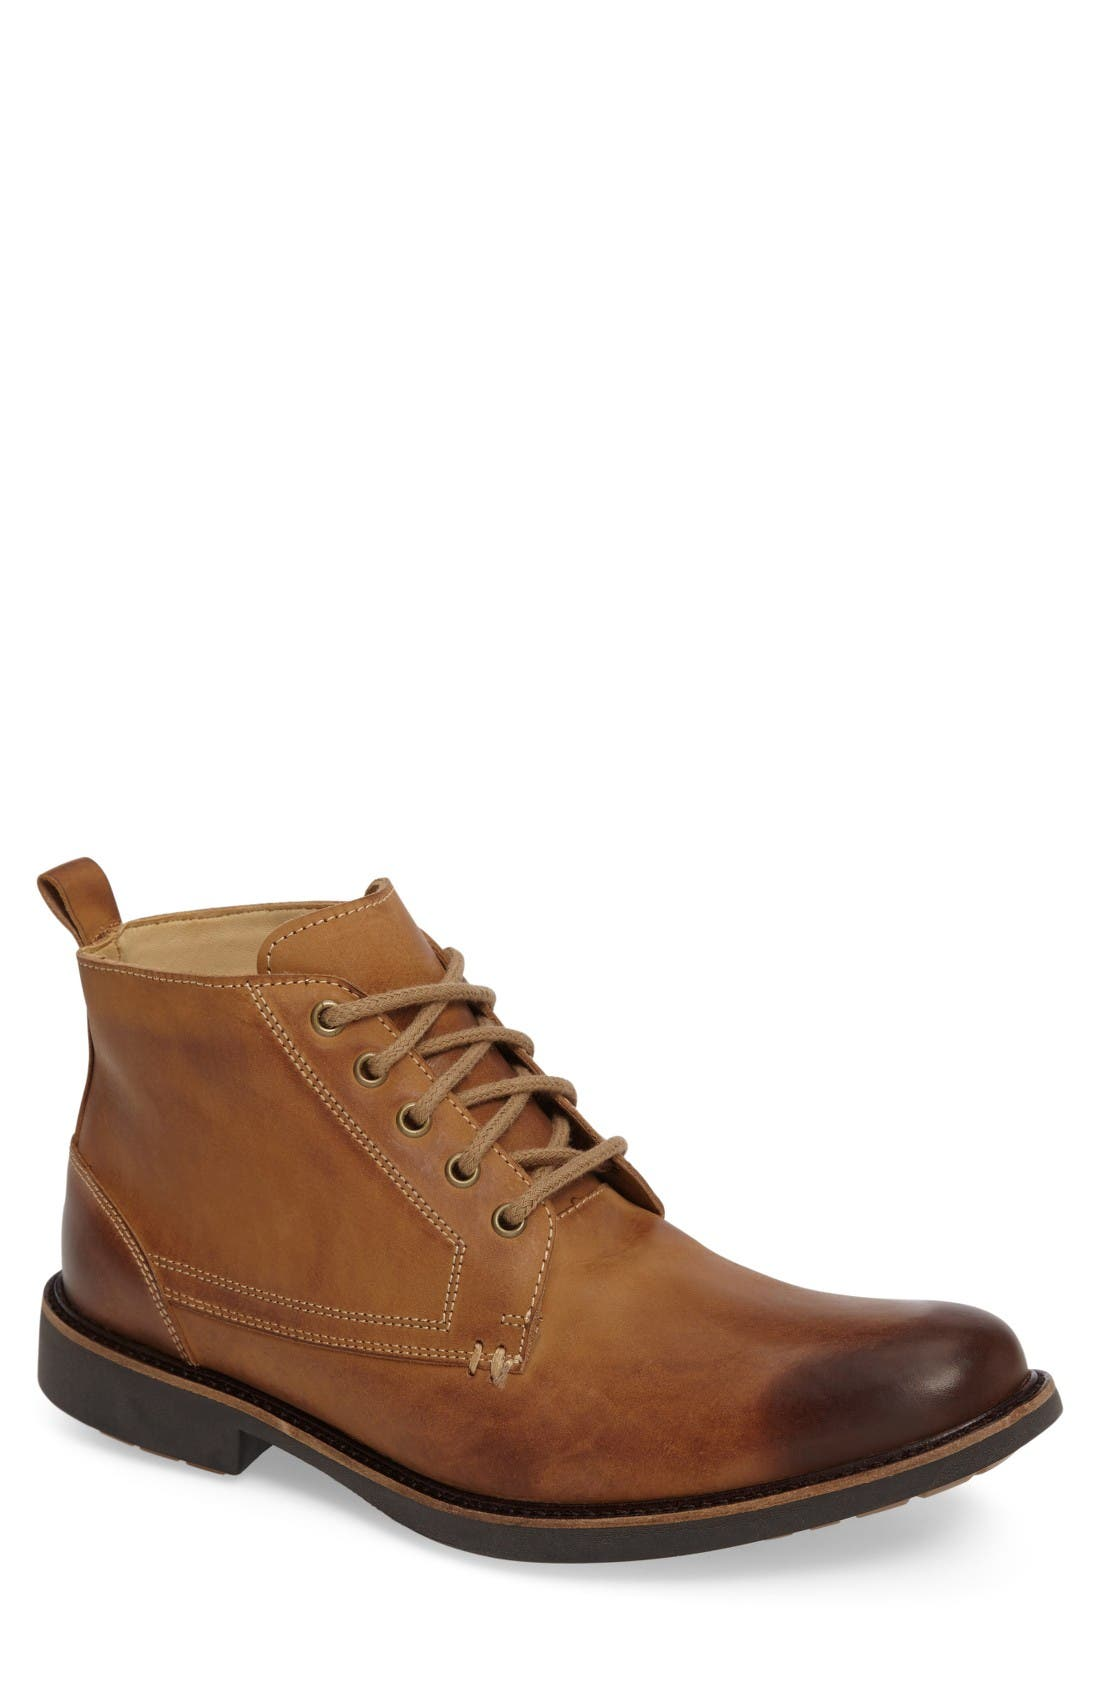 Main Image - Anatomic & Co. 'Pedras' Boot (Men)